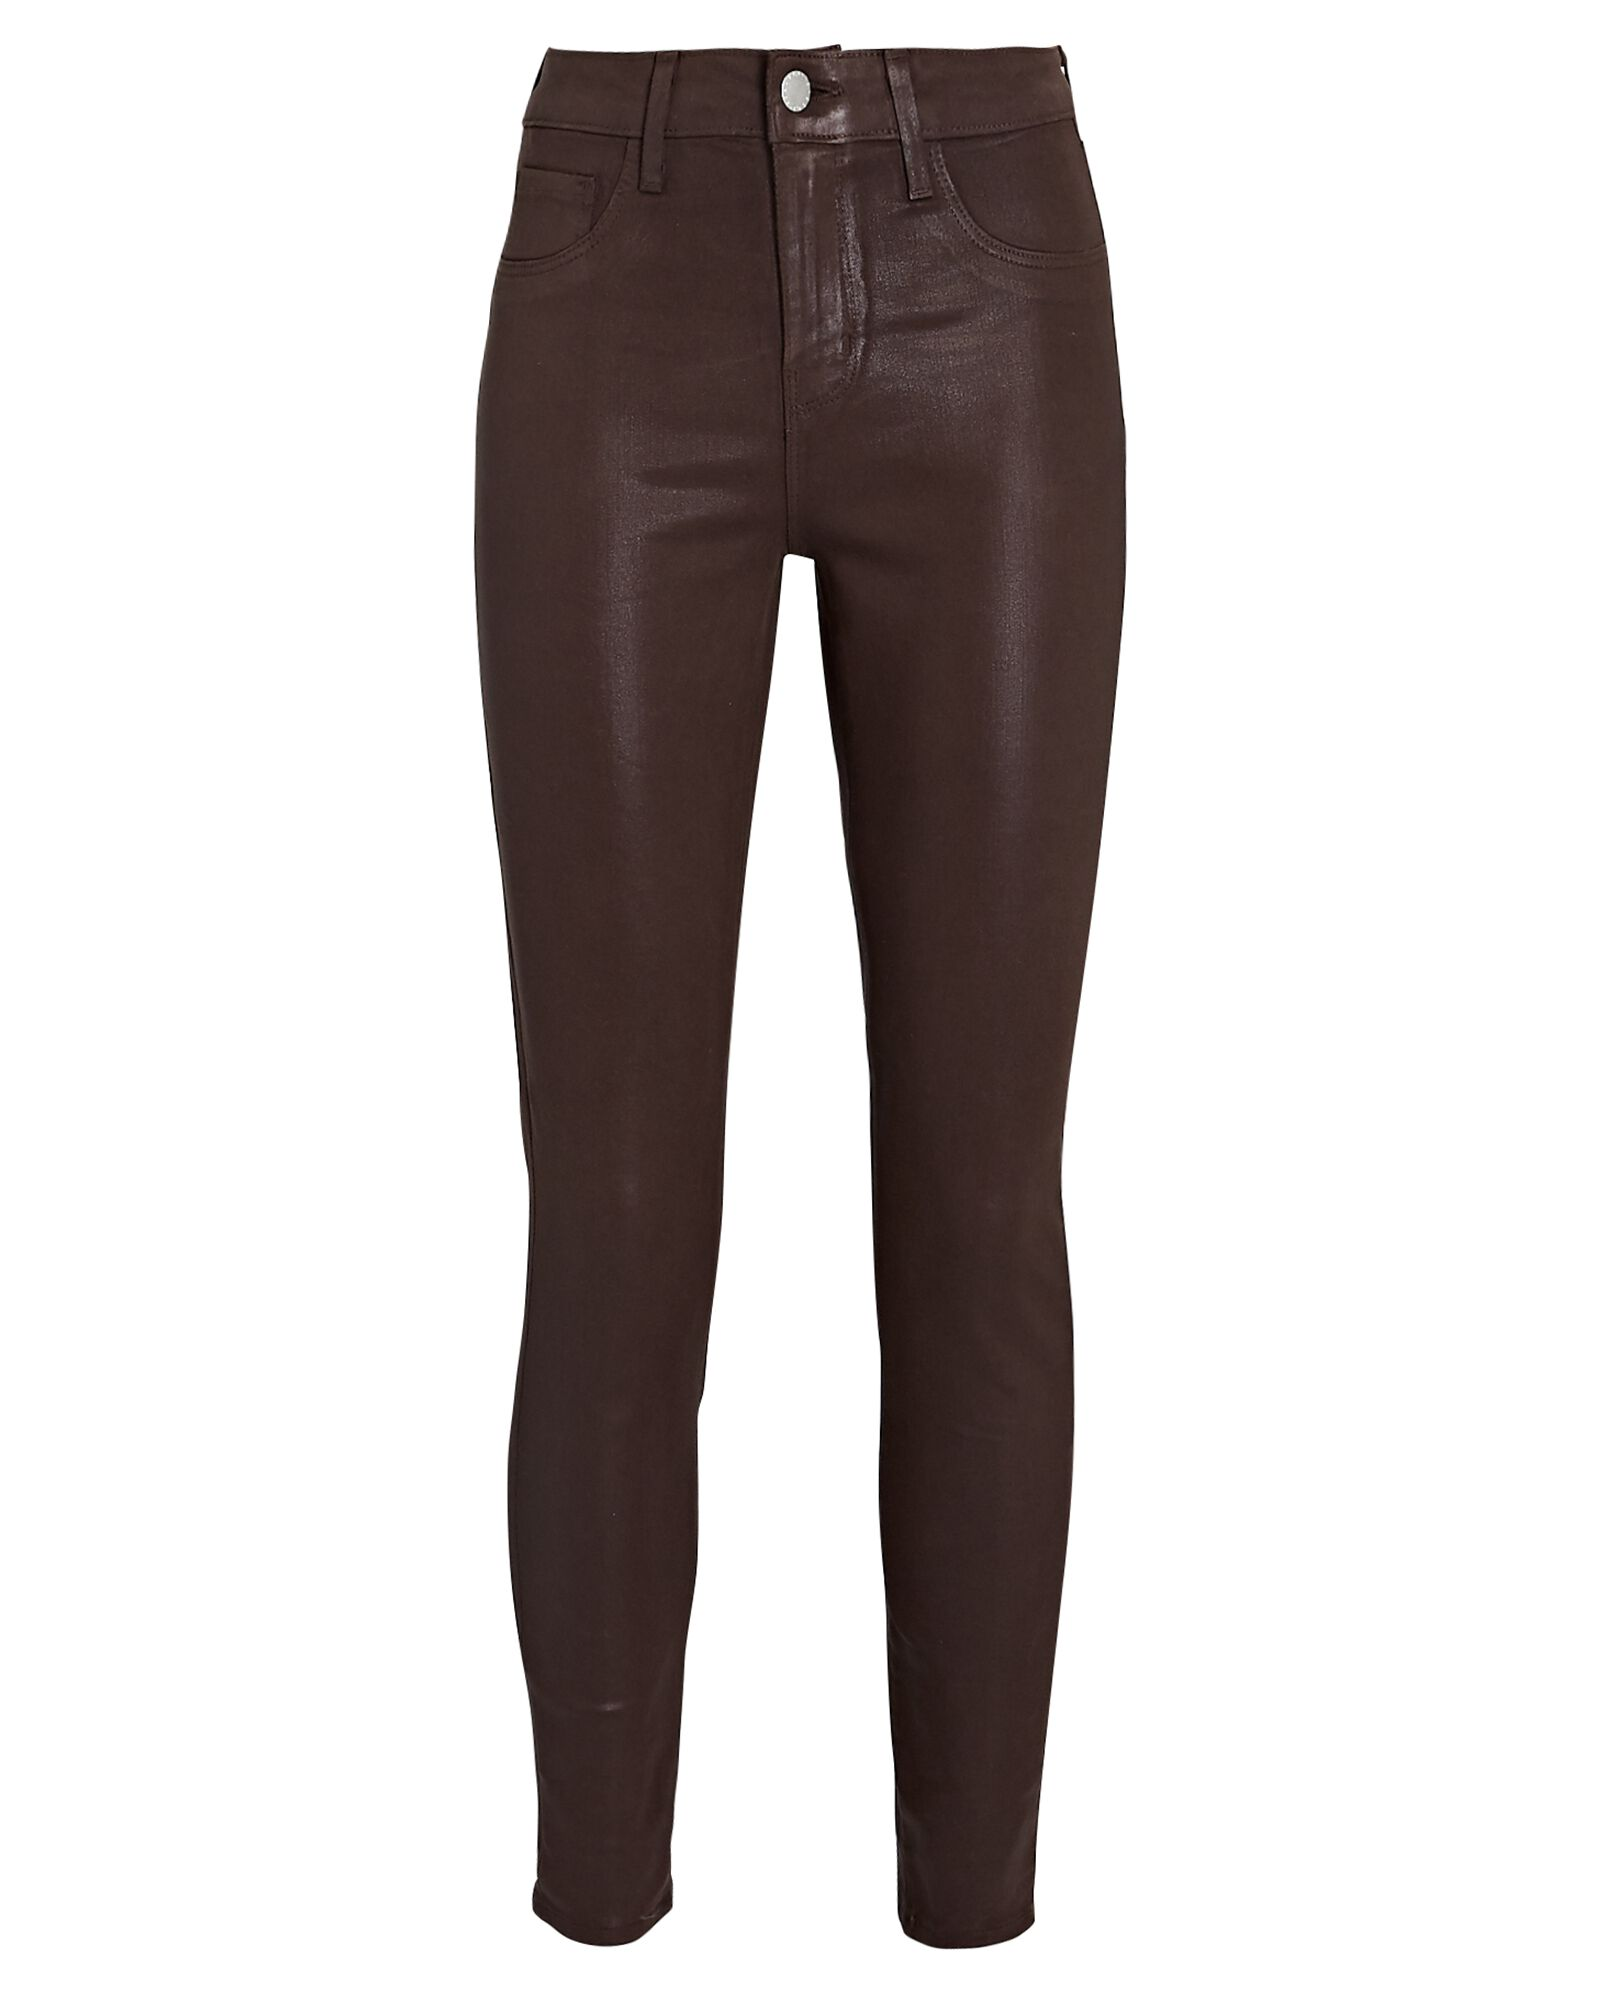 Margot Coated Skinny Jeans, COCOA, hi-res